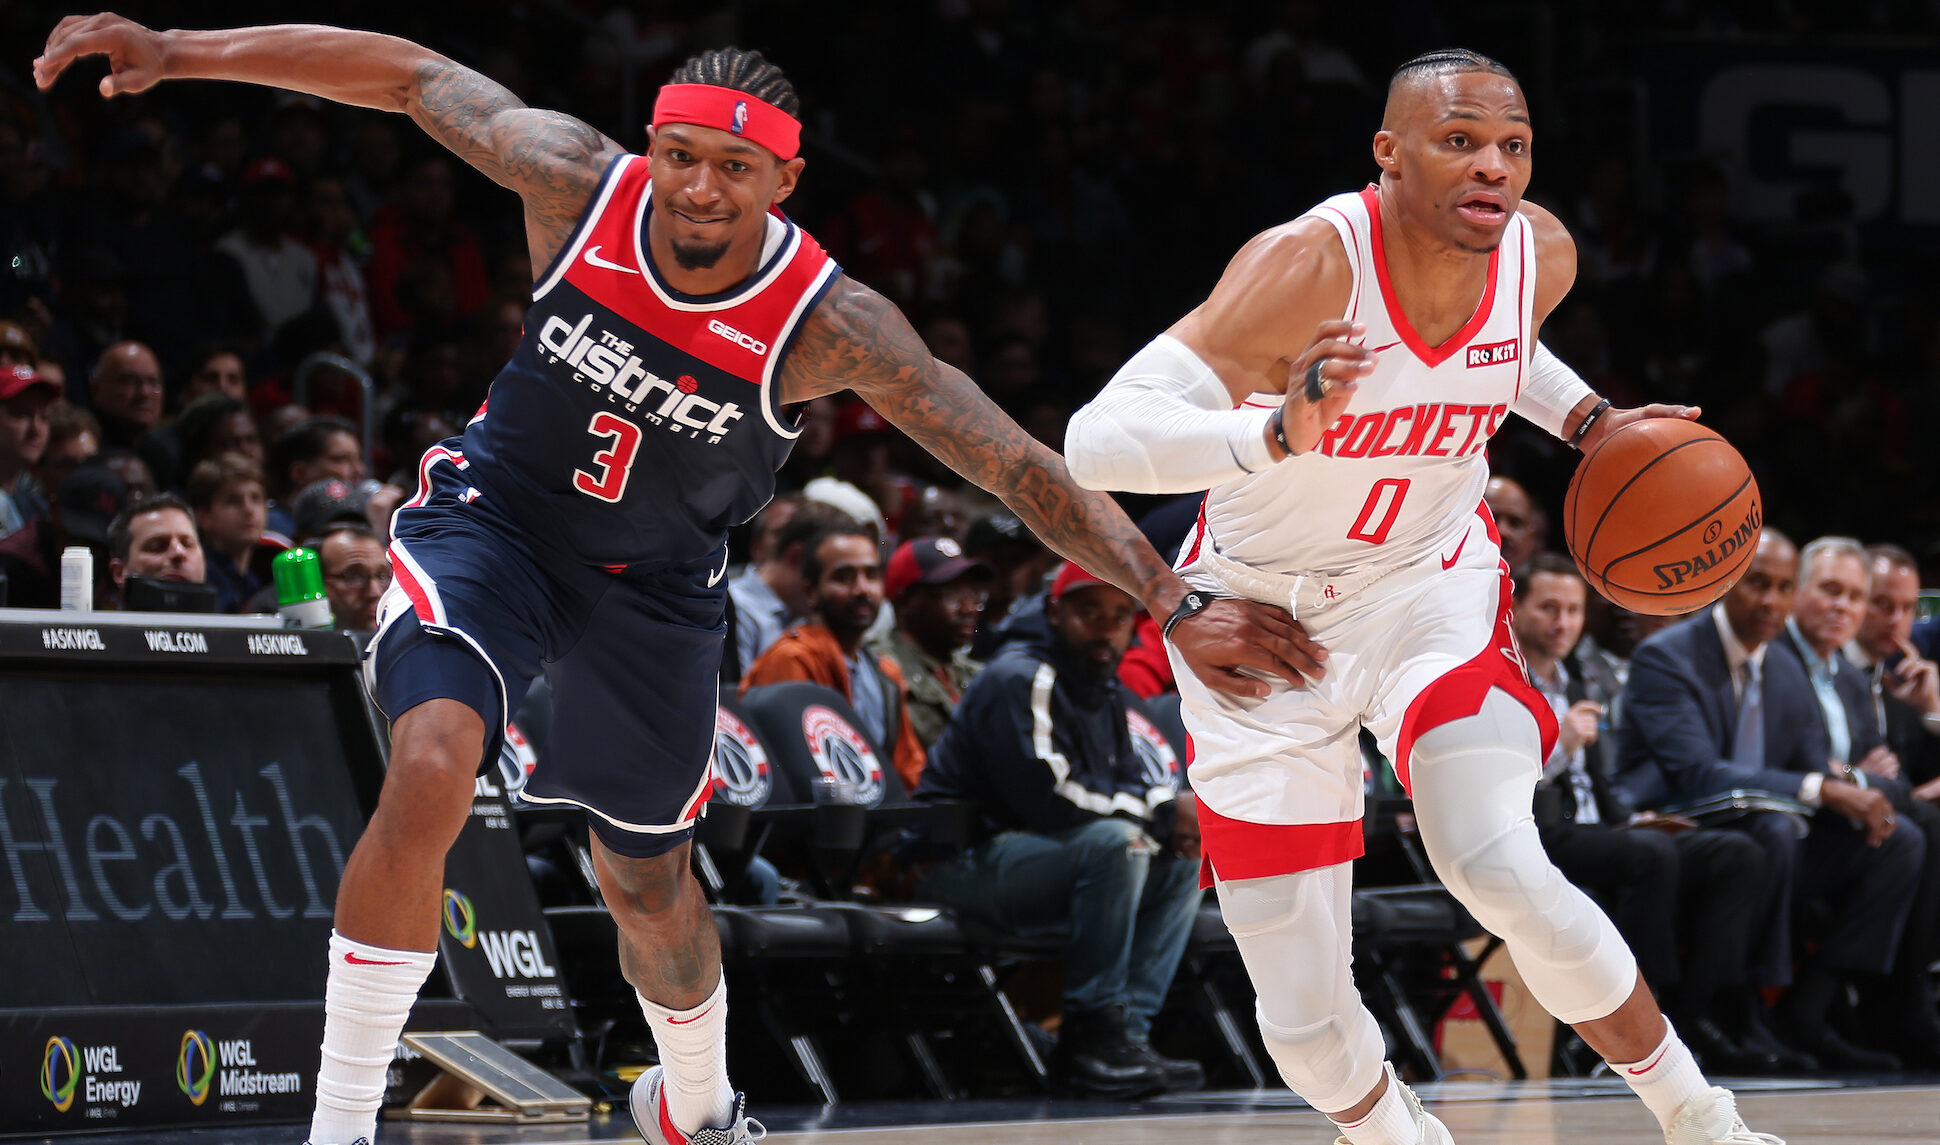 Beal excited for 'spark' Westbrook will bring to Wizards